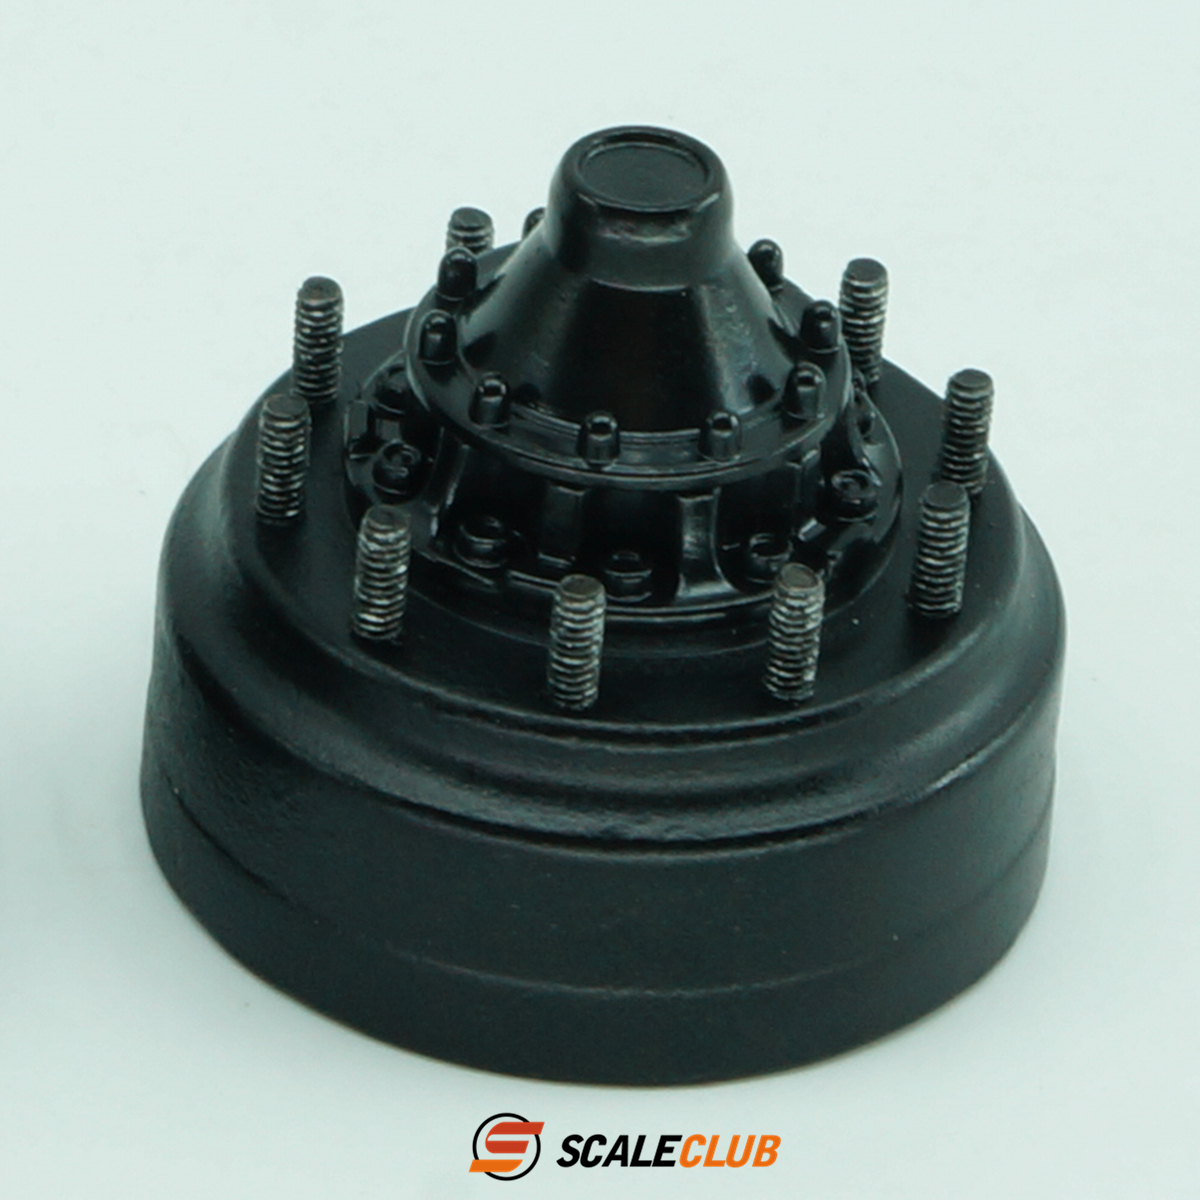 SCALECLUB  Scania  Metal Shaft Head Cover Clutch Assembly